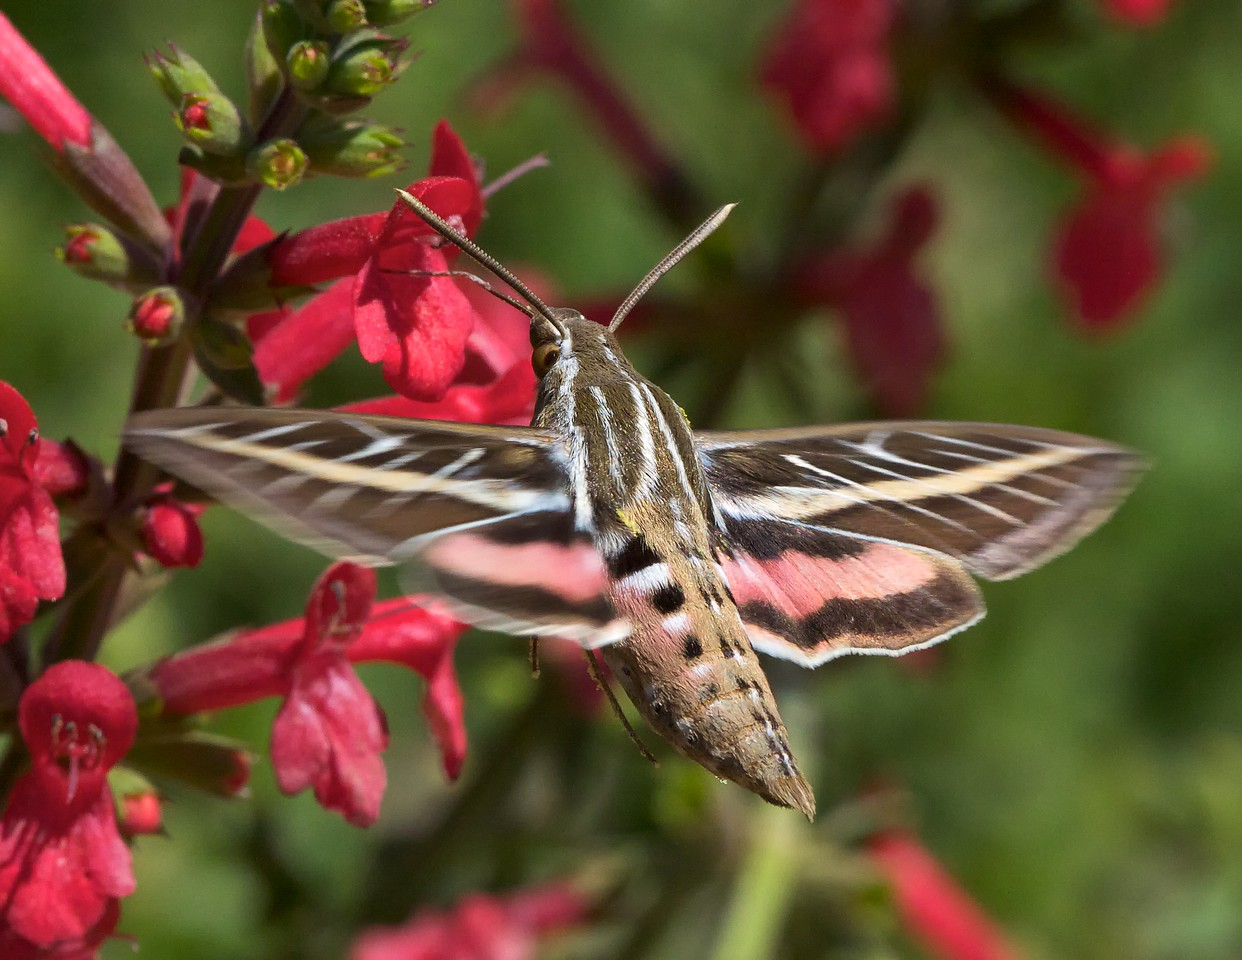 1/1600 second was not enough to stop the motion of this sphinx moth's wings. I am including this less than stellar photo because the mouthparts are visible. Sphinx moths, and almost all other moths, have a coiled proboscis that they unfurl to drink liquids and nectar from flowers. The proboscis is visible just below the left antenna.